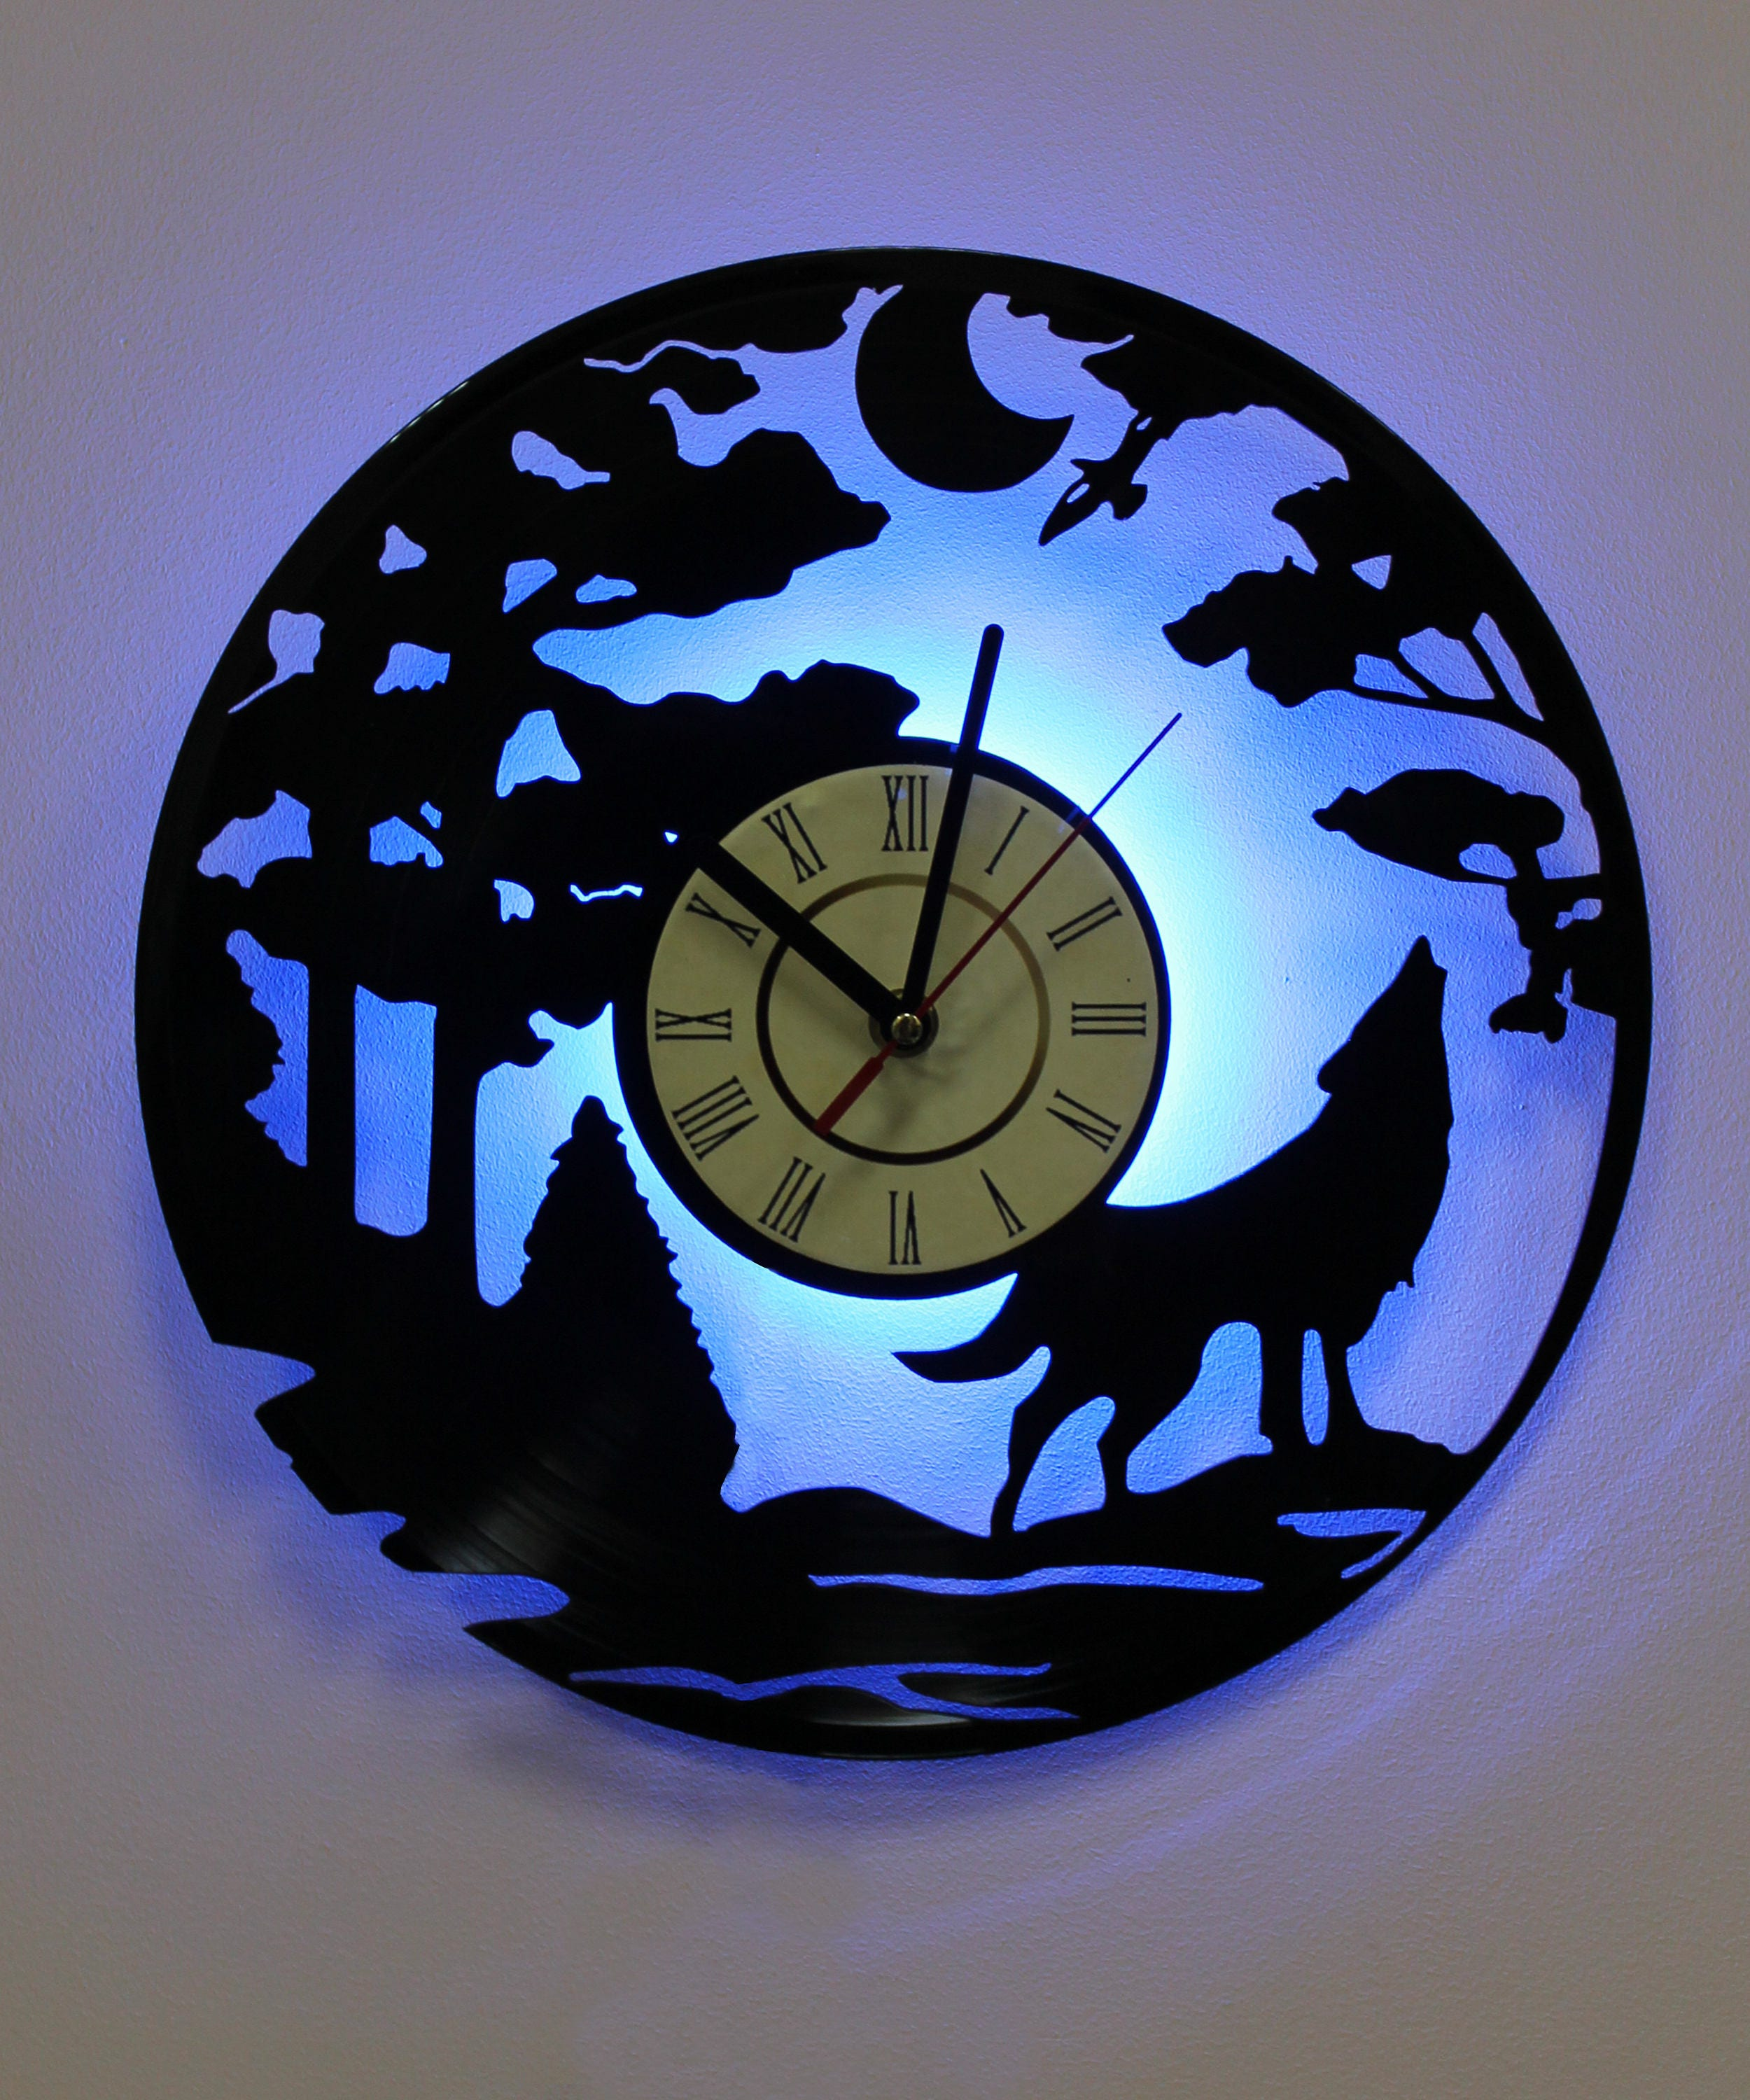 Wolf silhouette led lighting wall clock vinyl record night details night light function vintage wall clock amipublicfo Gallery